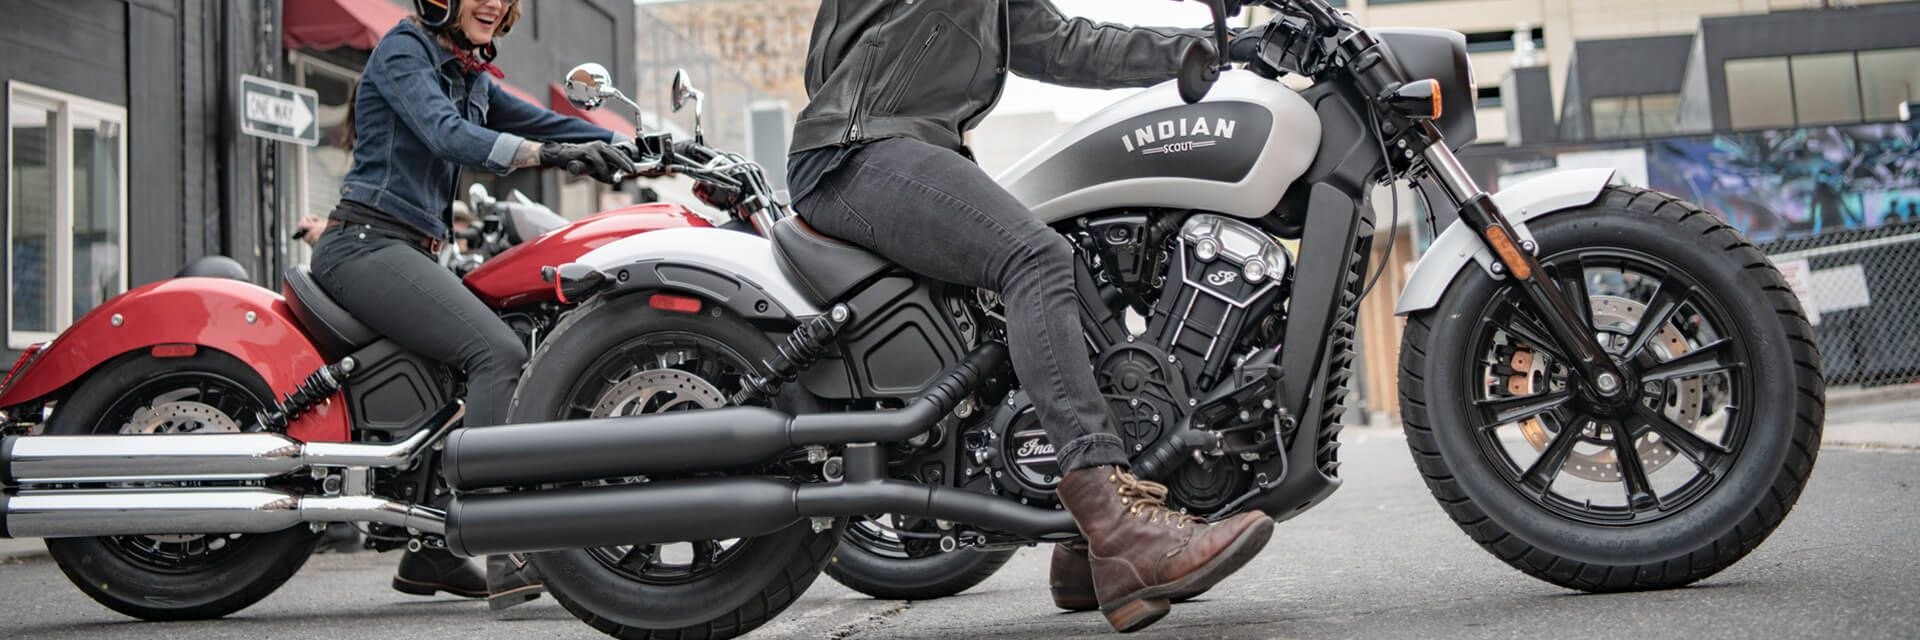 Shop Indian Motorcycles at All Seasons Powersports